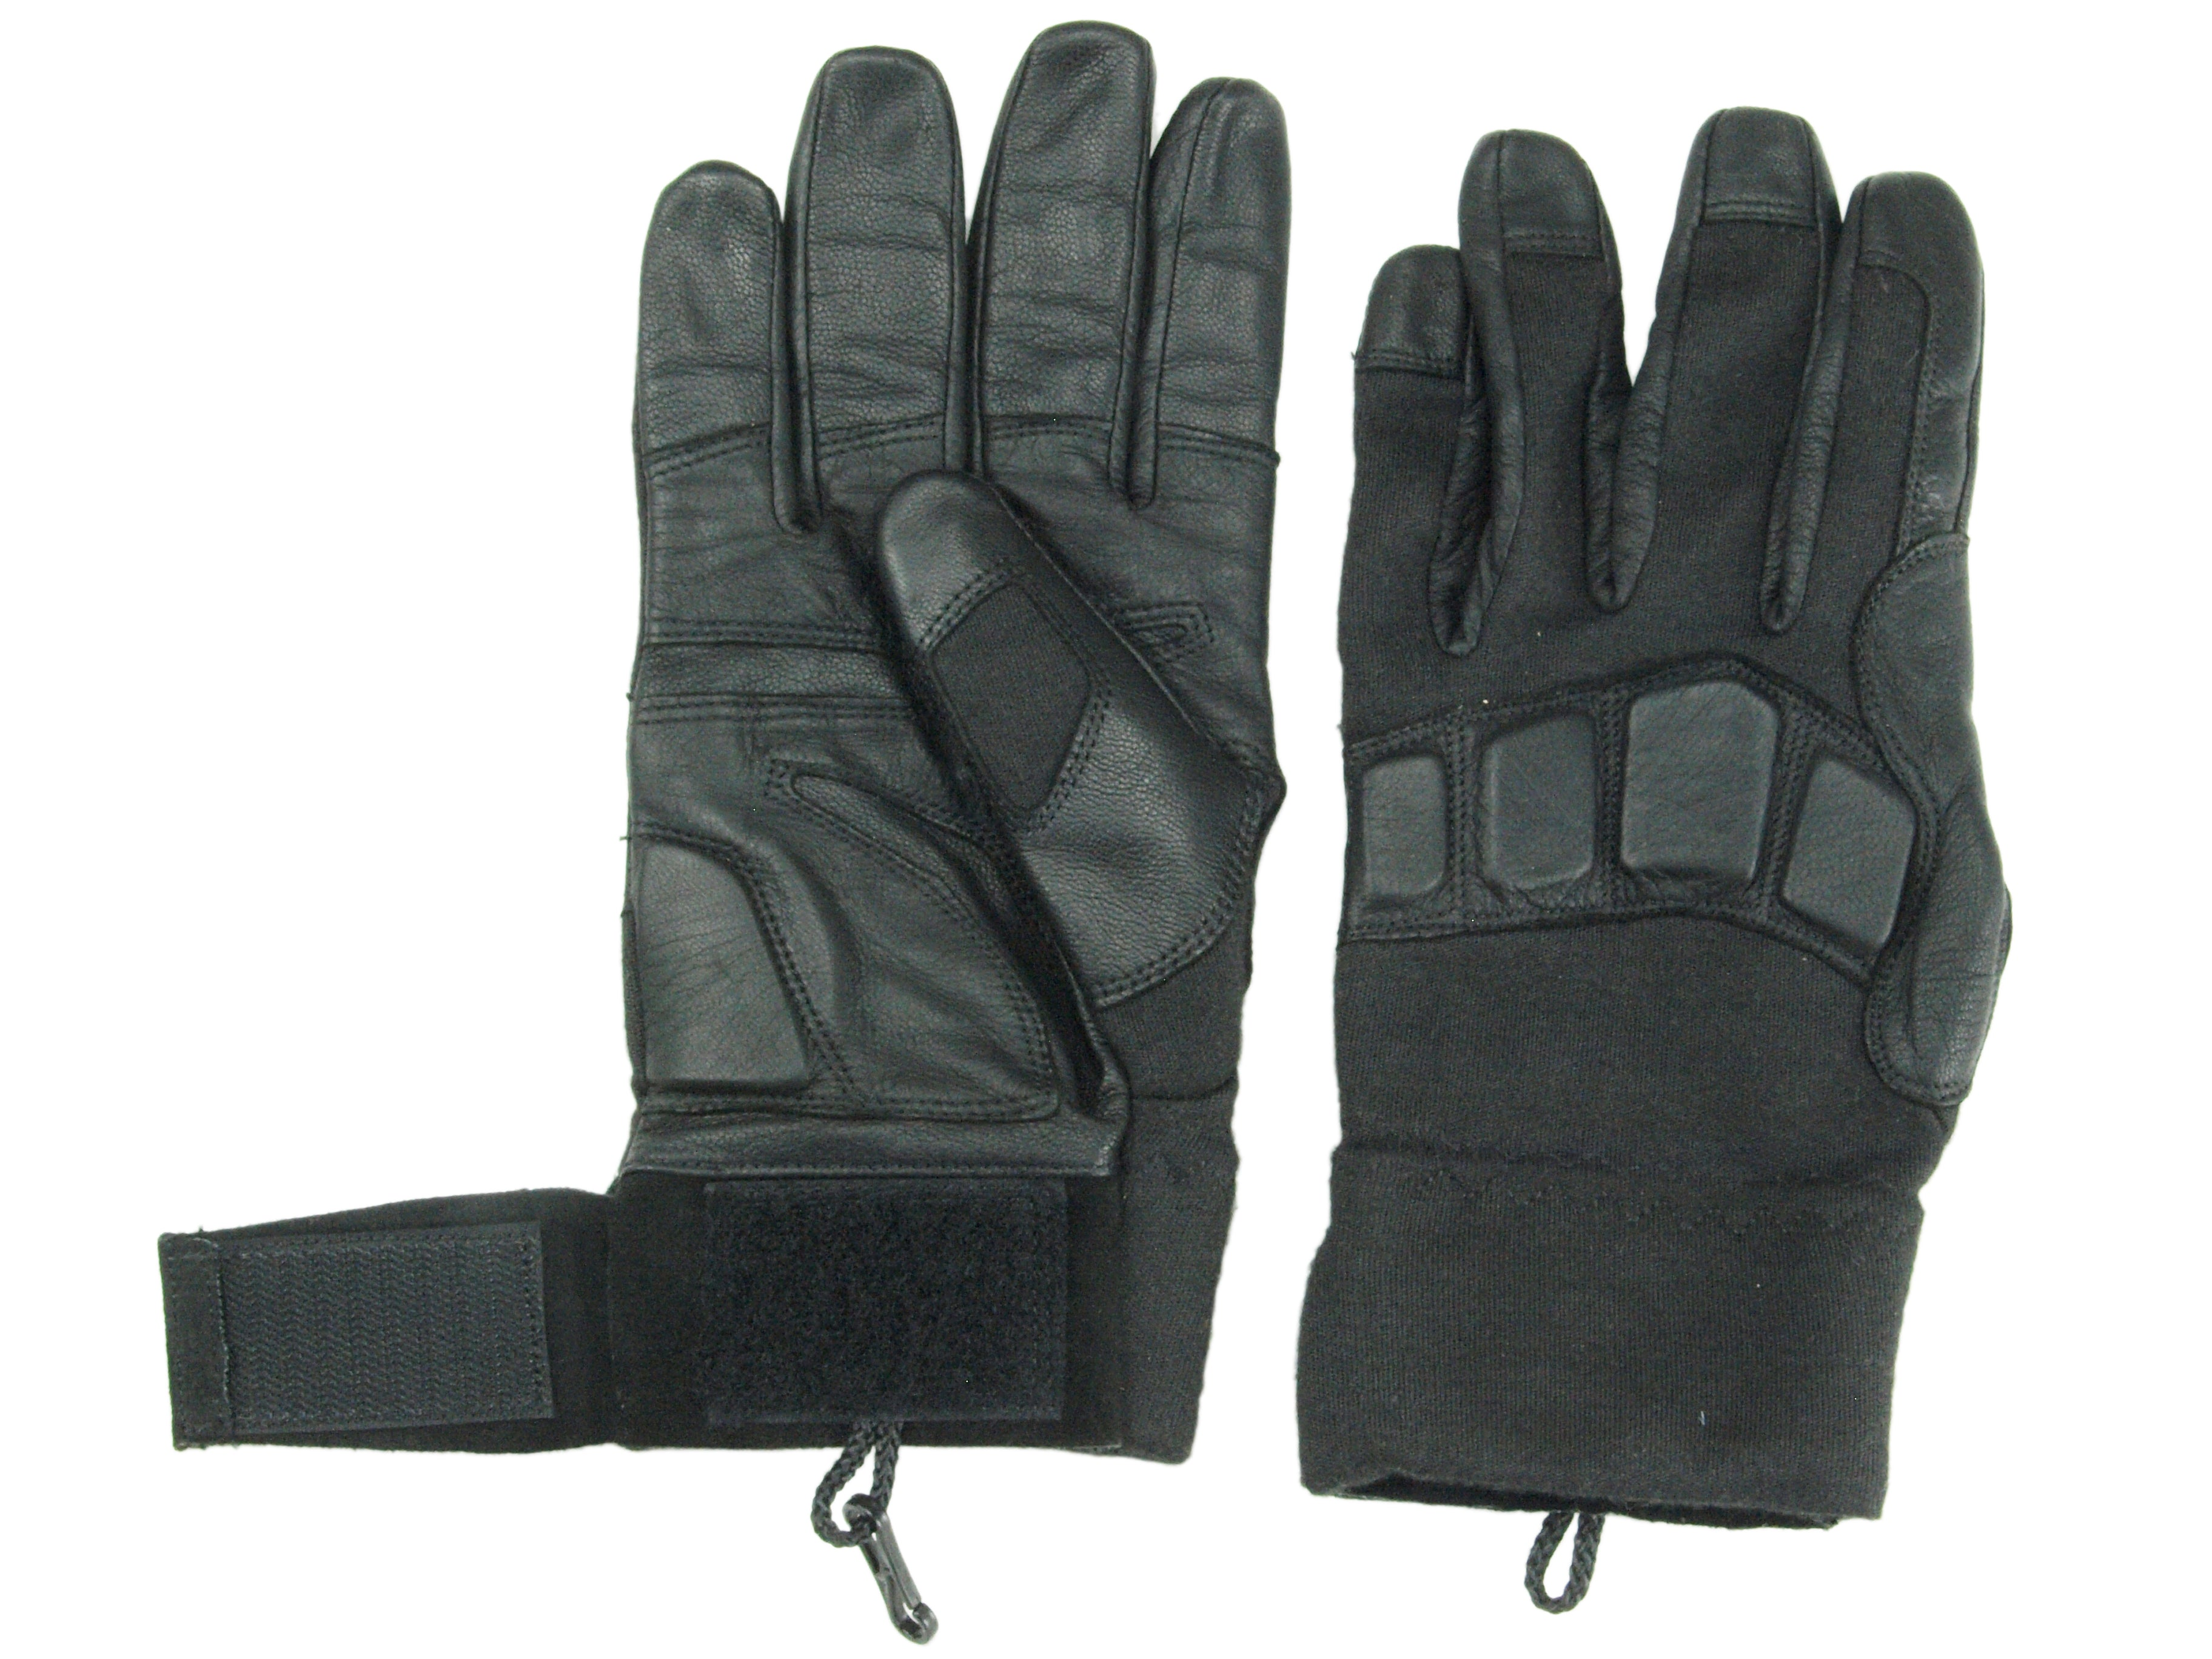 BlackC Sport Lightweight All Purpose Military Tactical Duty Gloves